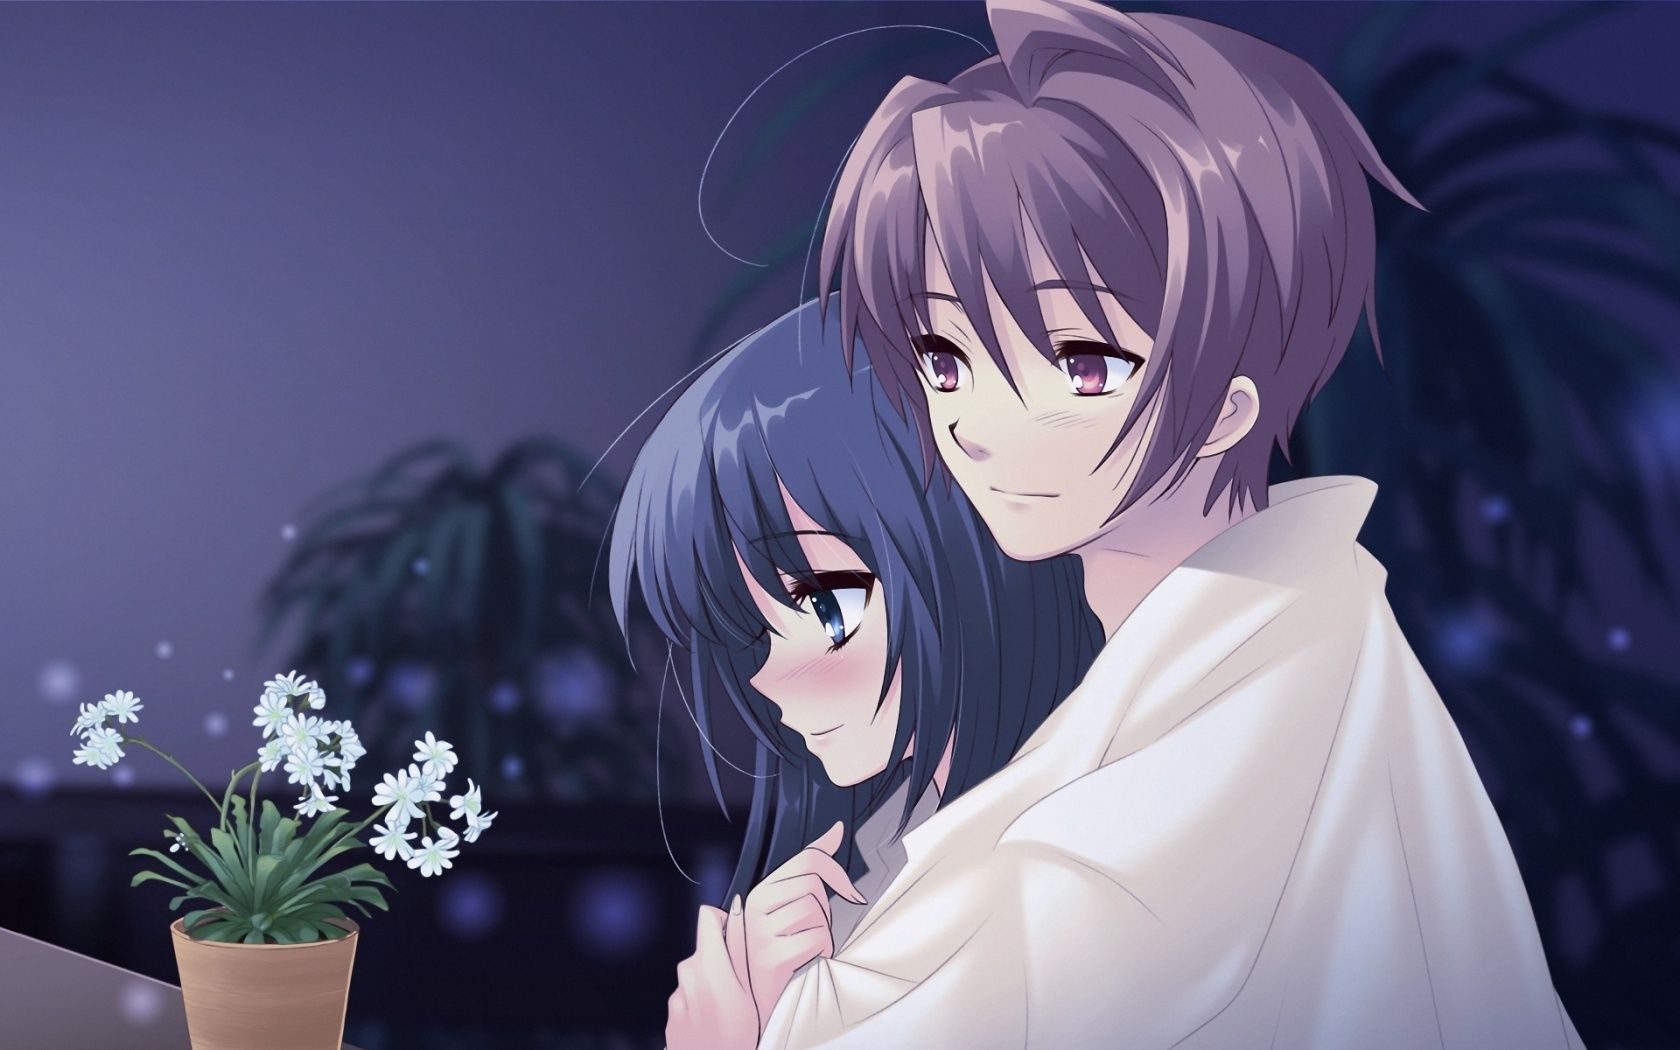 Anime boy and girl love anime boy and girl 1680 x 1050 download close